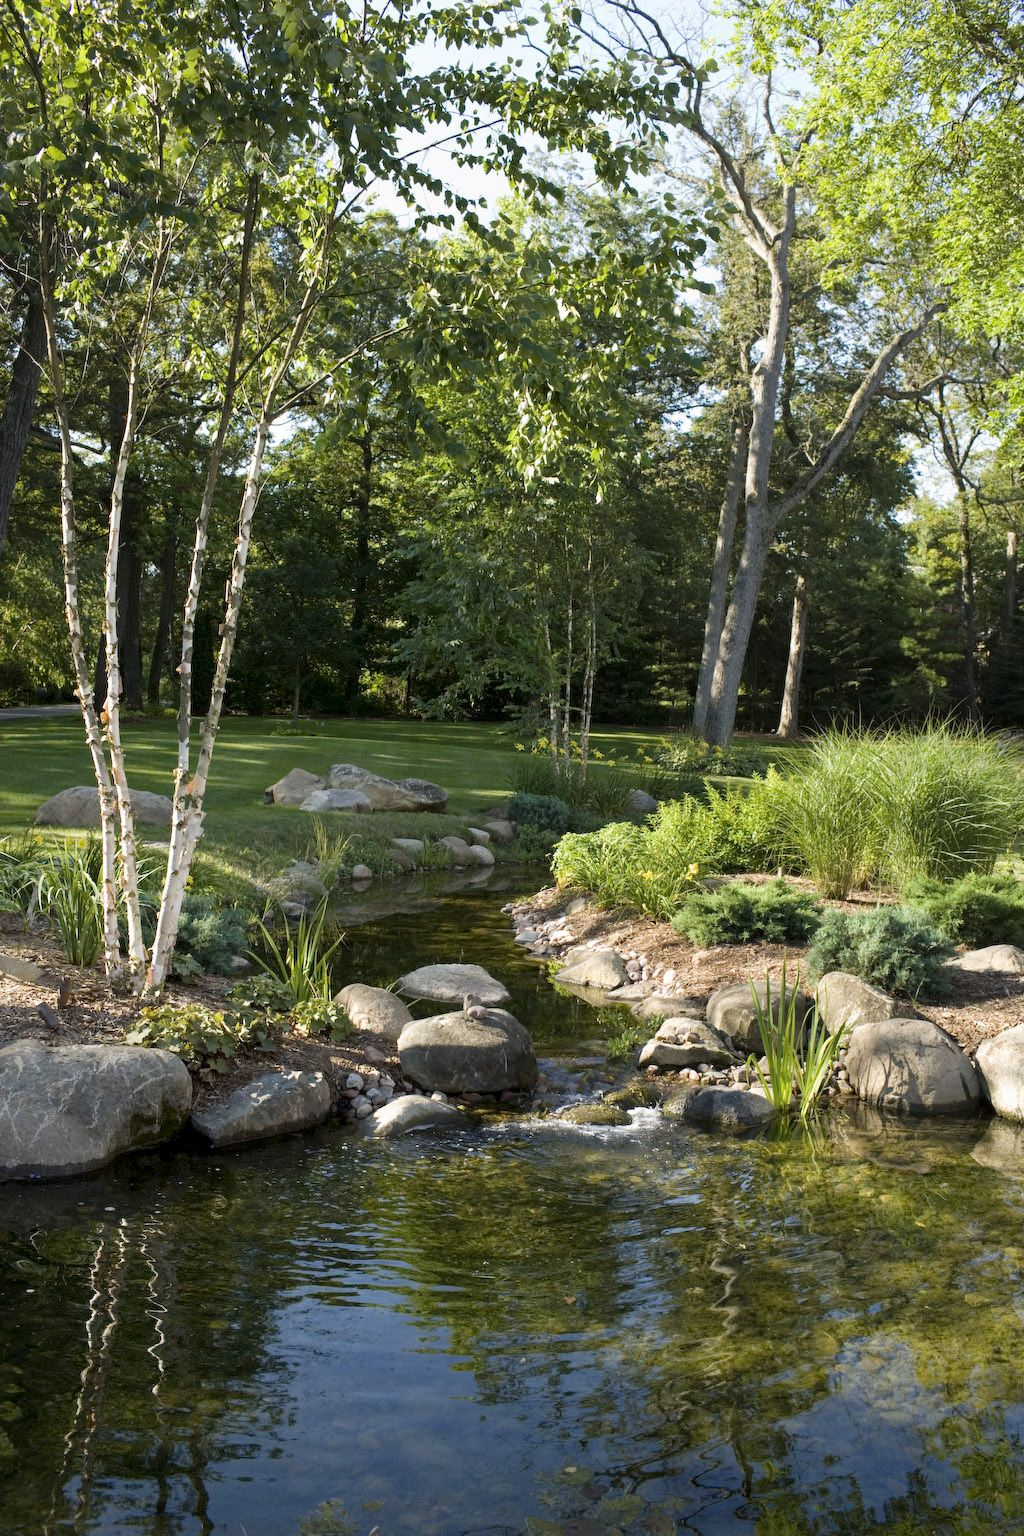 Pin by Heather Atherton on Ponds and Waterfalls | Water ... on Backyard Stream Ideas id=24741